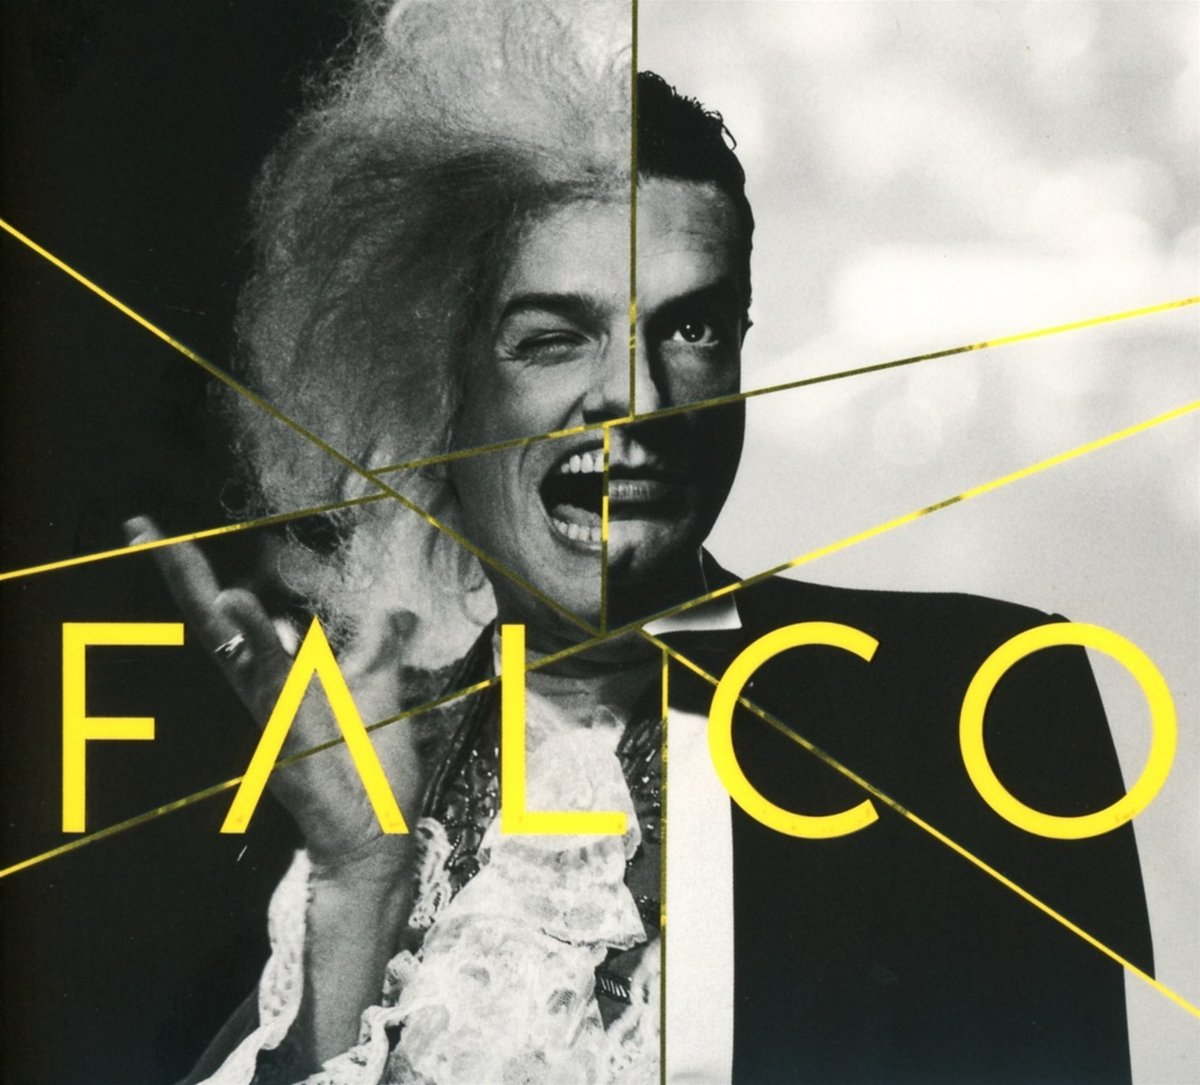 FALCO Falco 60 Deluxe Amazon Music